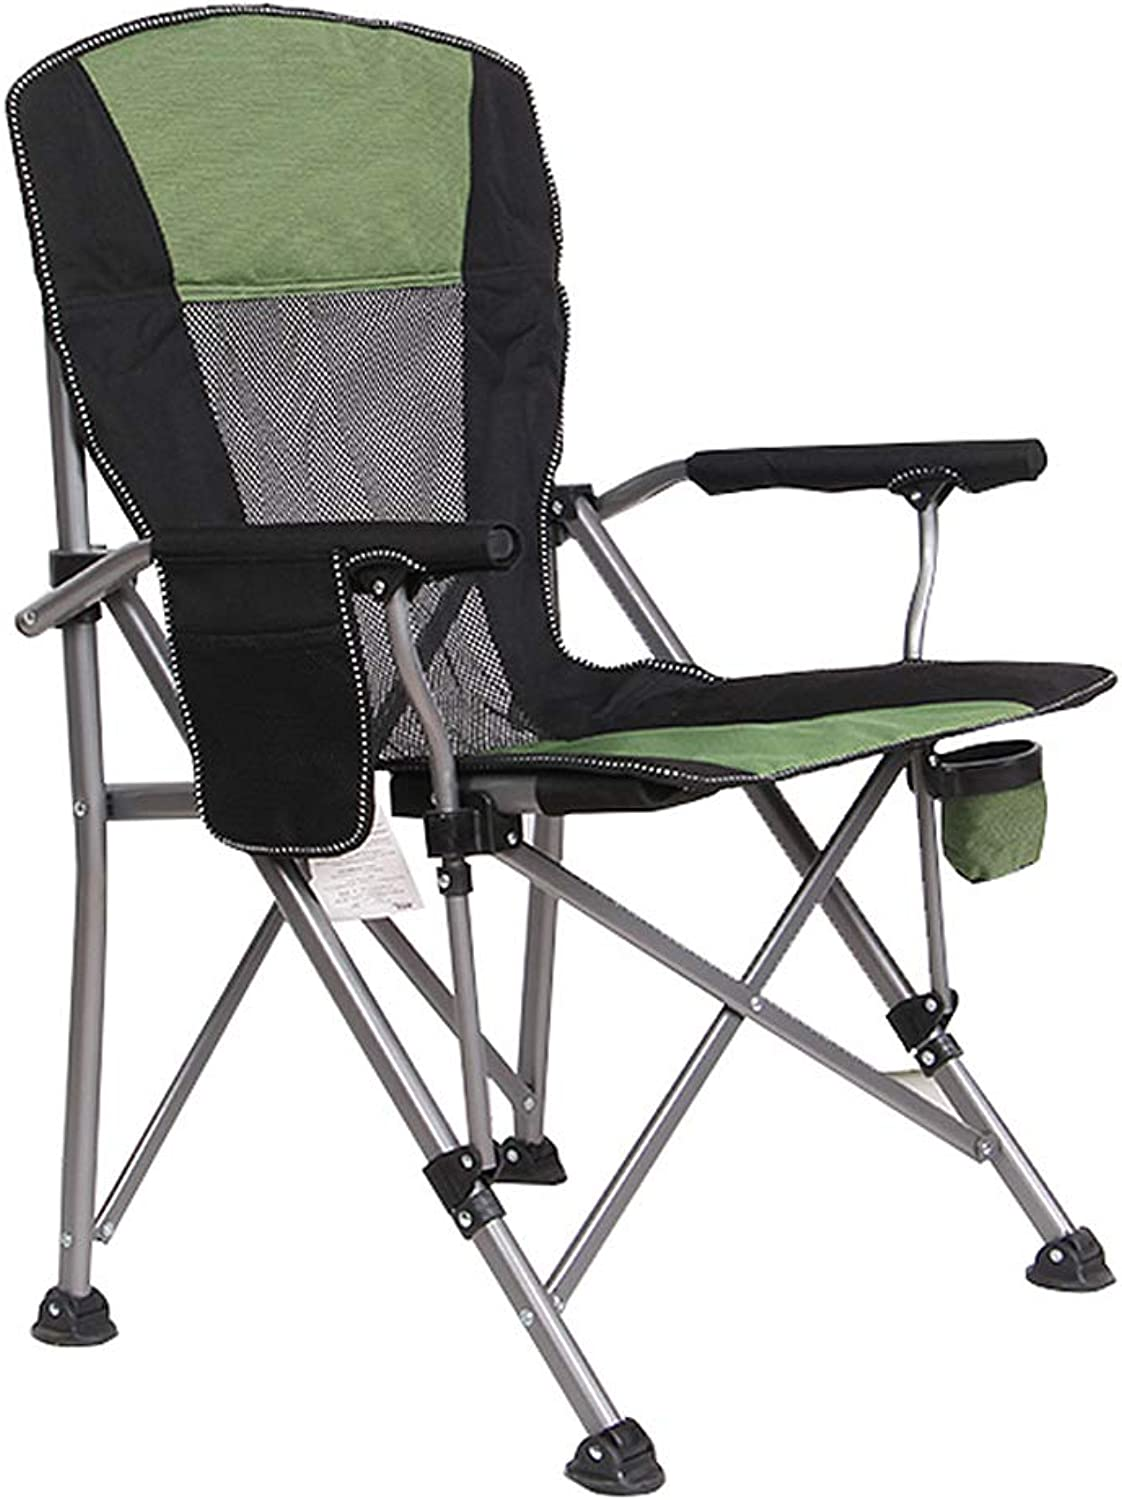 Folding Lightweight Camping Chair Portable Outdoor, Beach BBQ Camp Fishing Picnic Hiking Backyard Backpacking Sports Hunting Chairs, Green